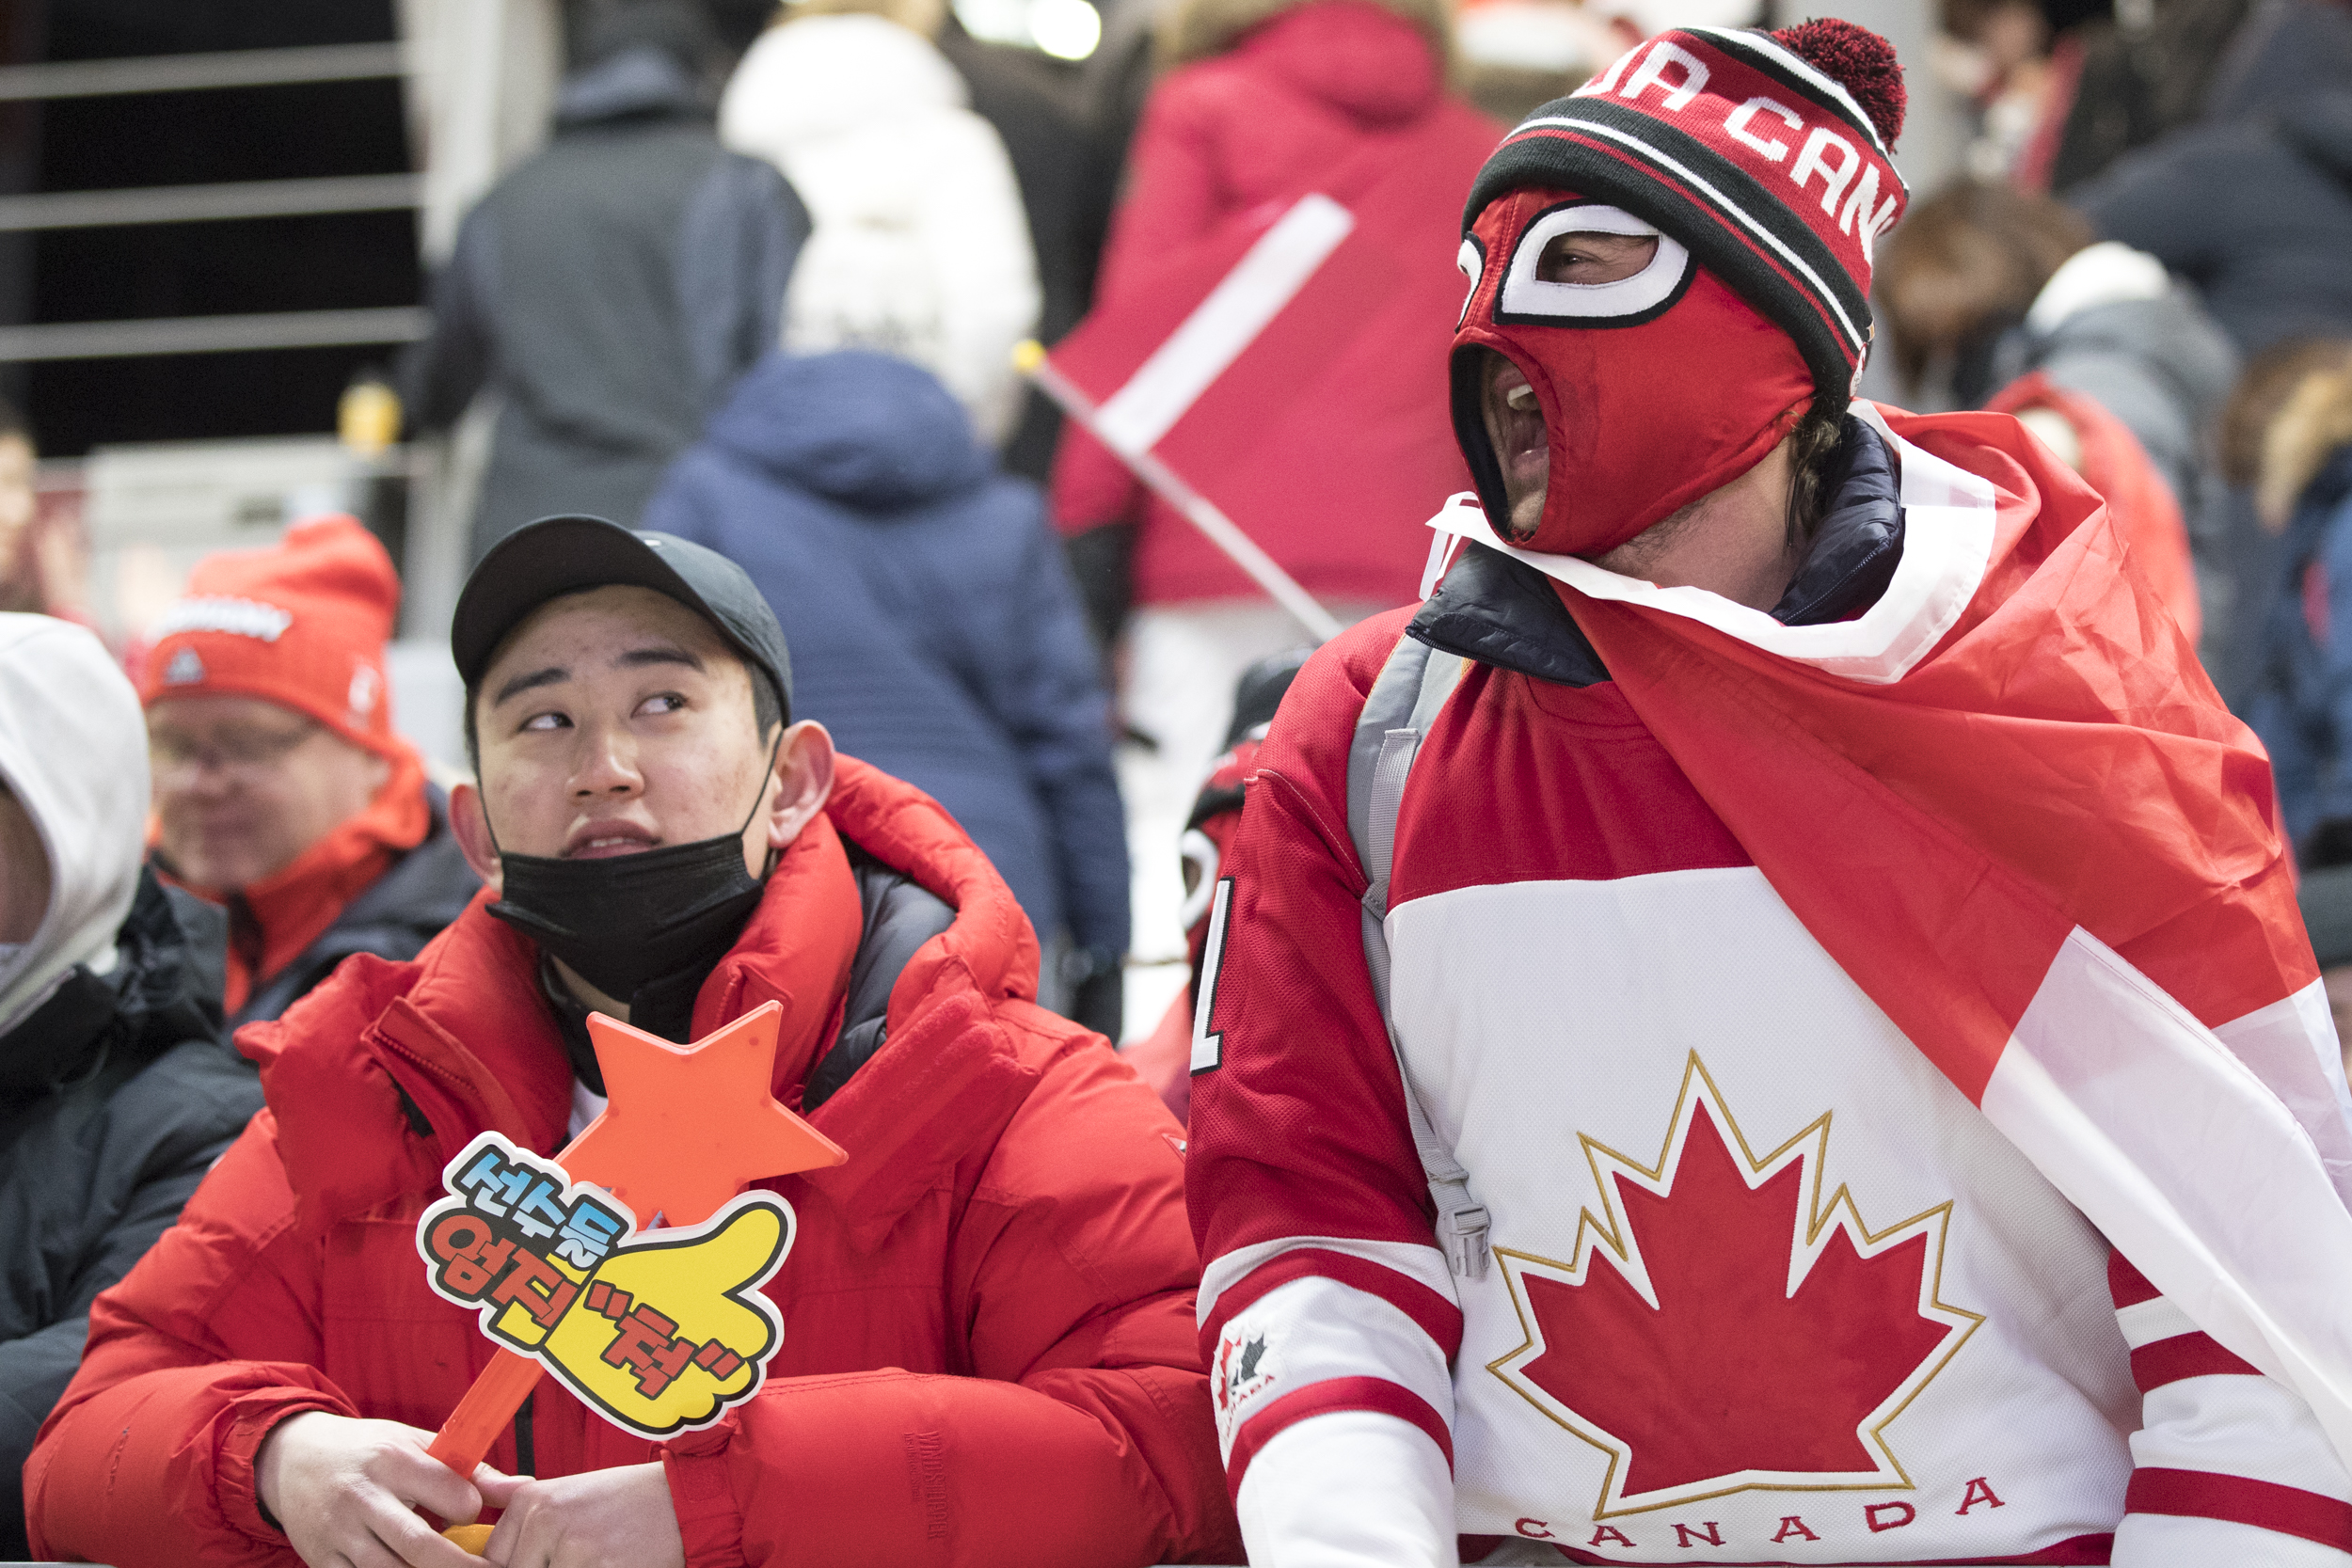 Alexander Kopacz and Justin Kripps win gold in the 2-man bobsleigh at the PyeongChang 2018 Olympic Winter Games in Korea, Monday, February 19, 2018.